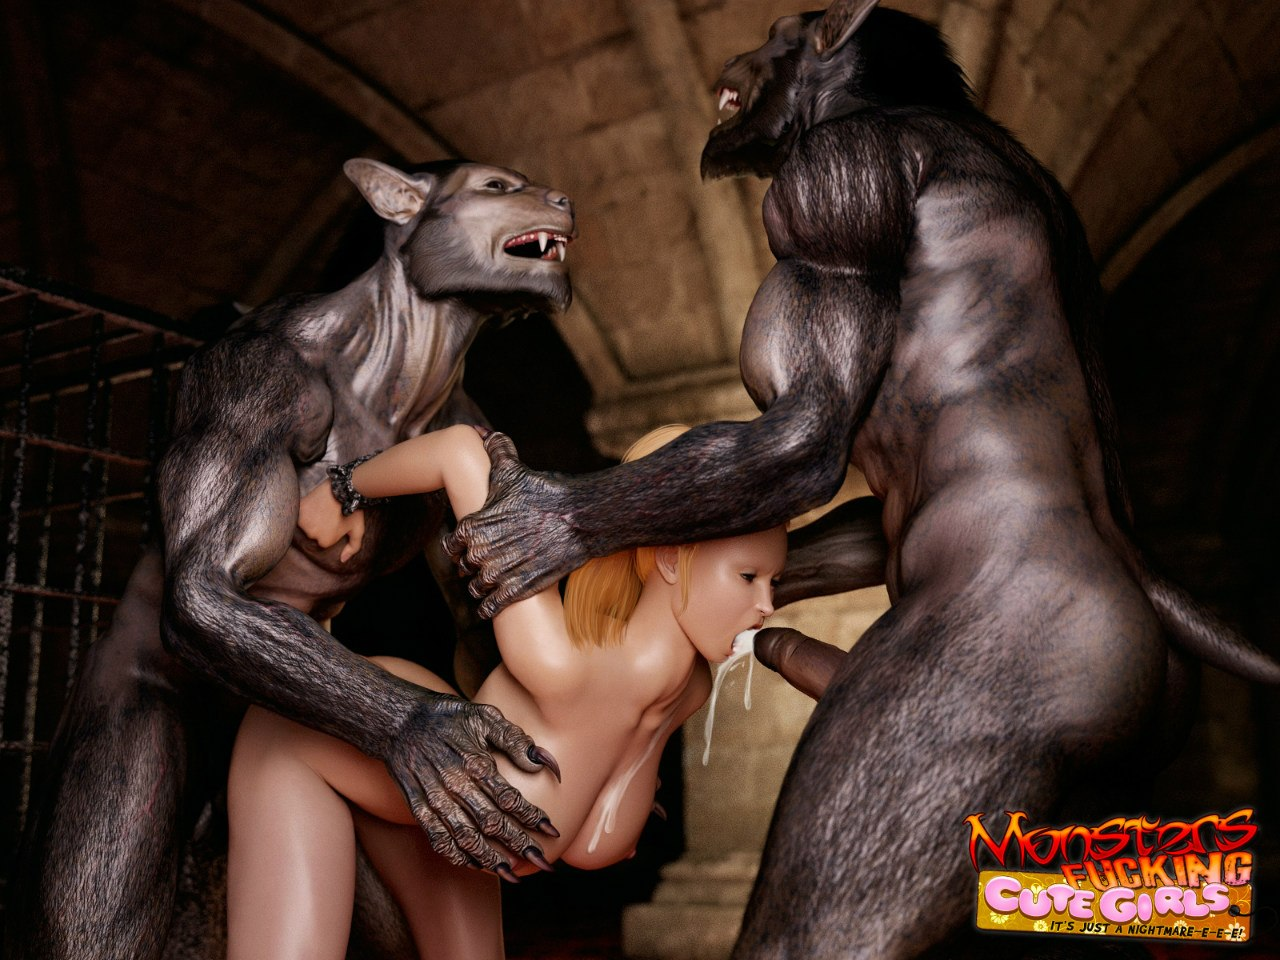 Girls with werewolf monsters porn erotic reality girl